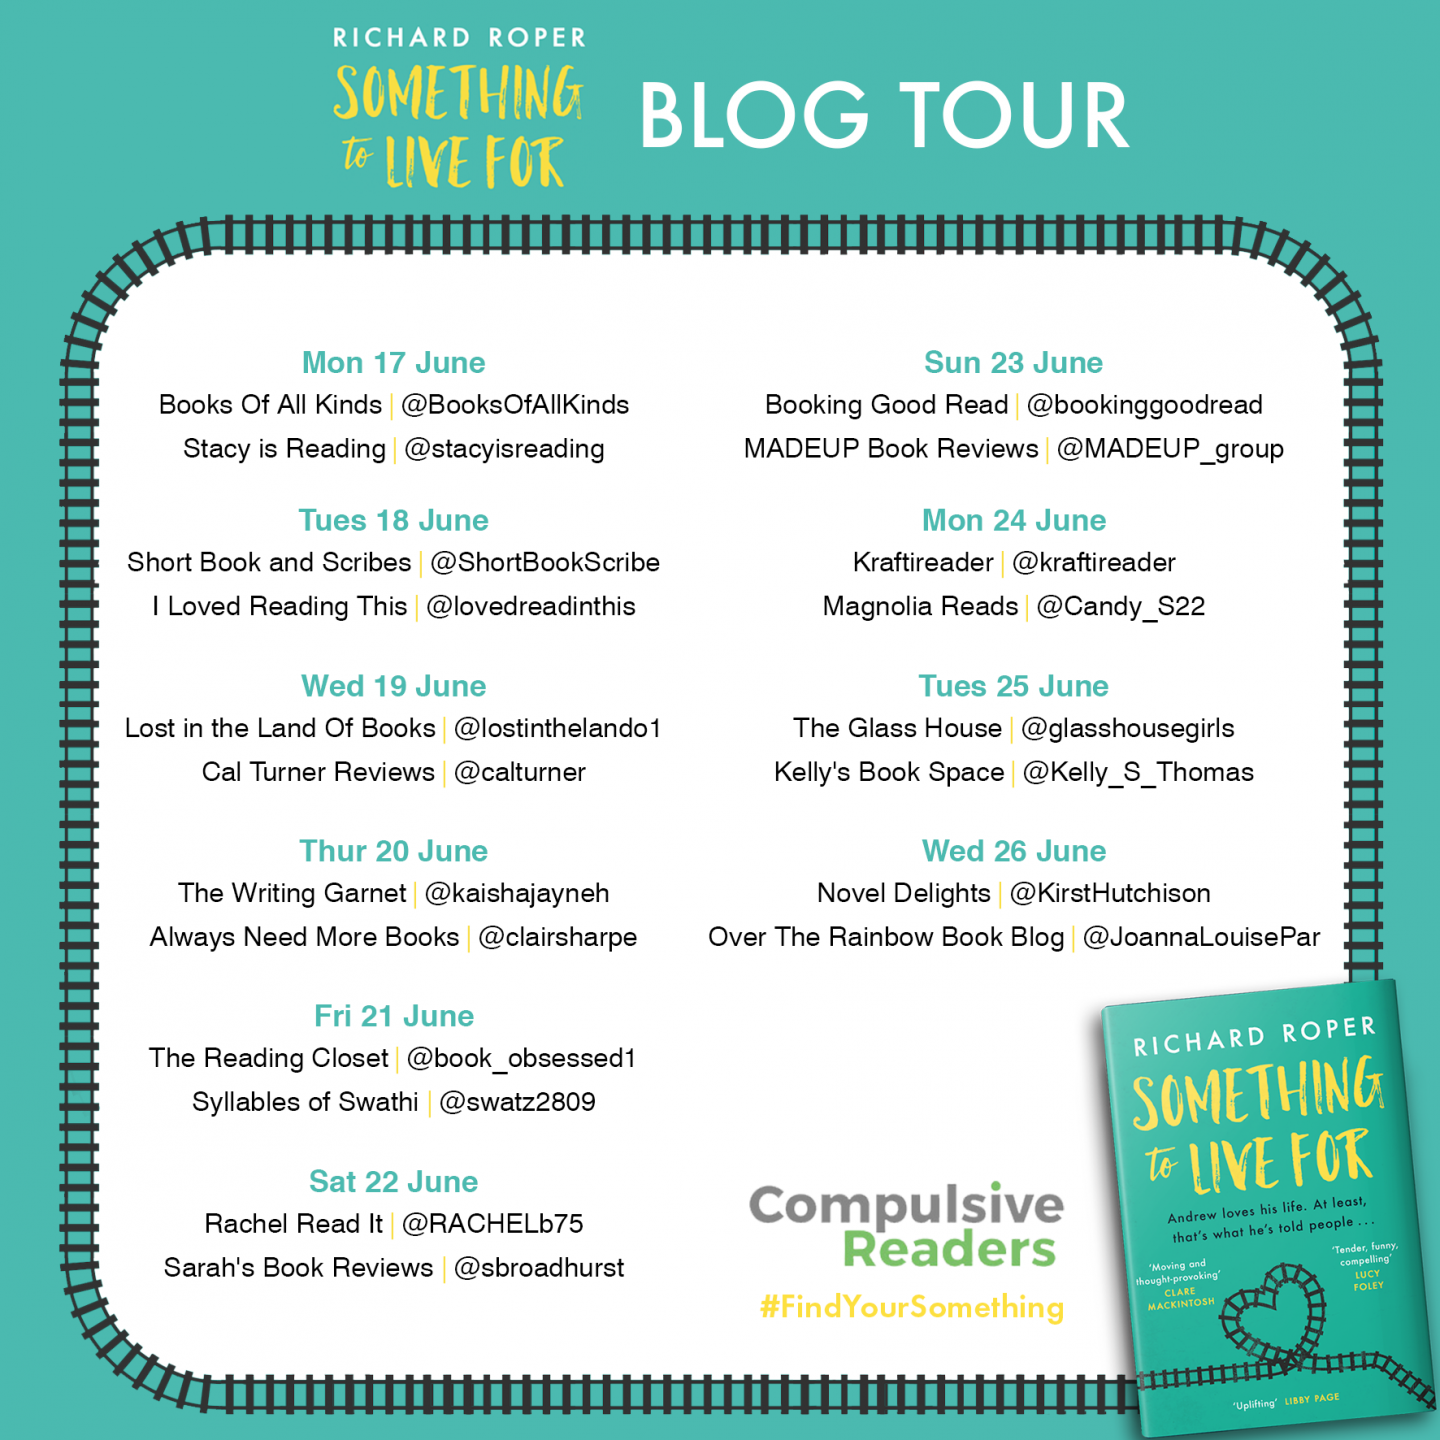 Something-to-Live-For-blog-tour-1